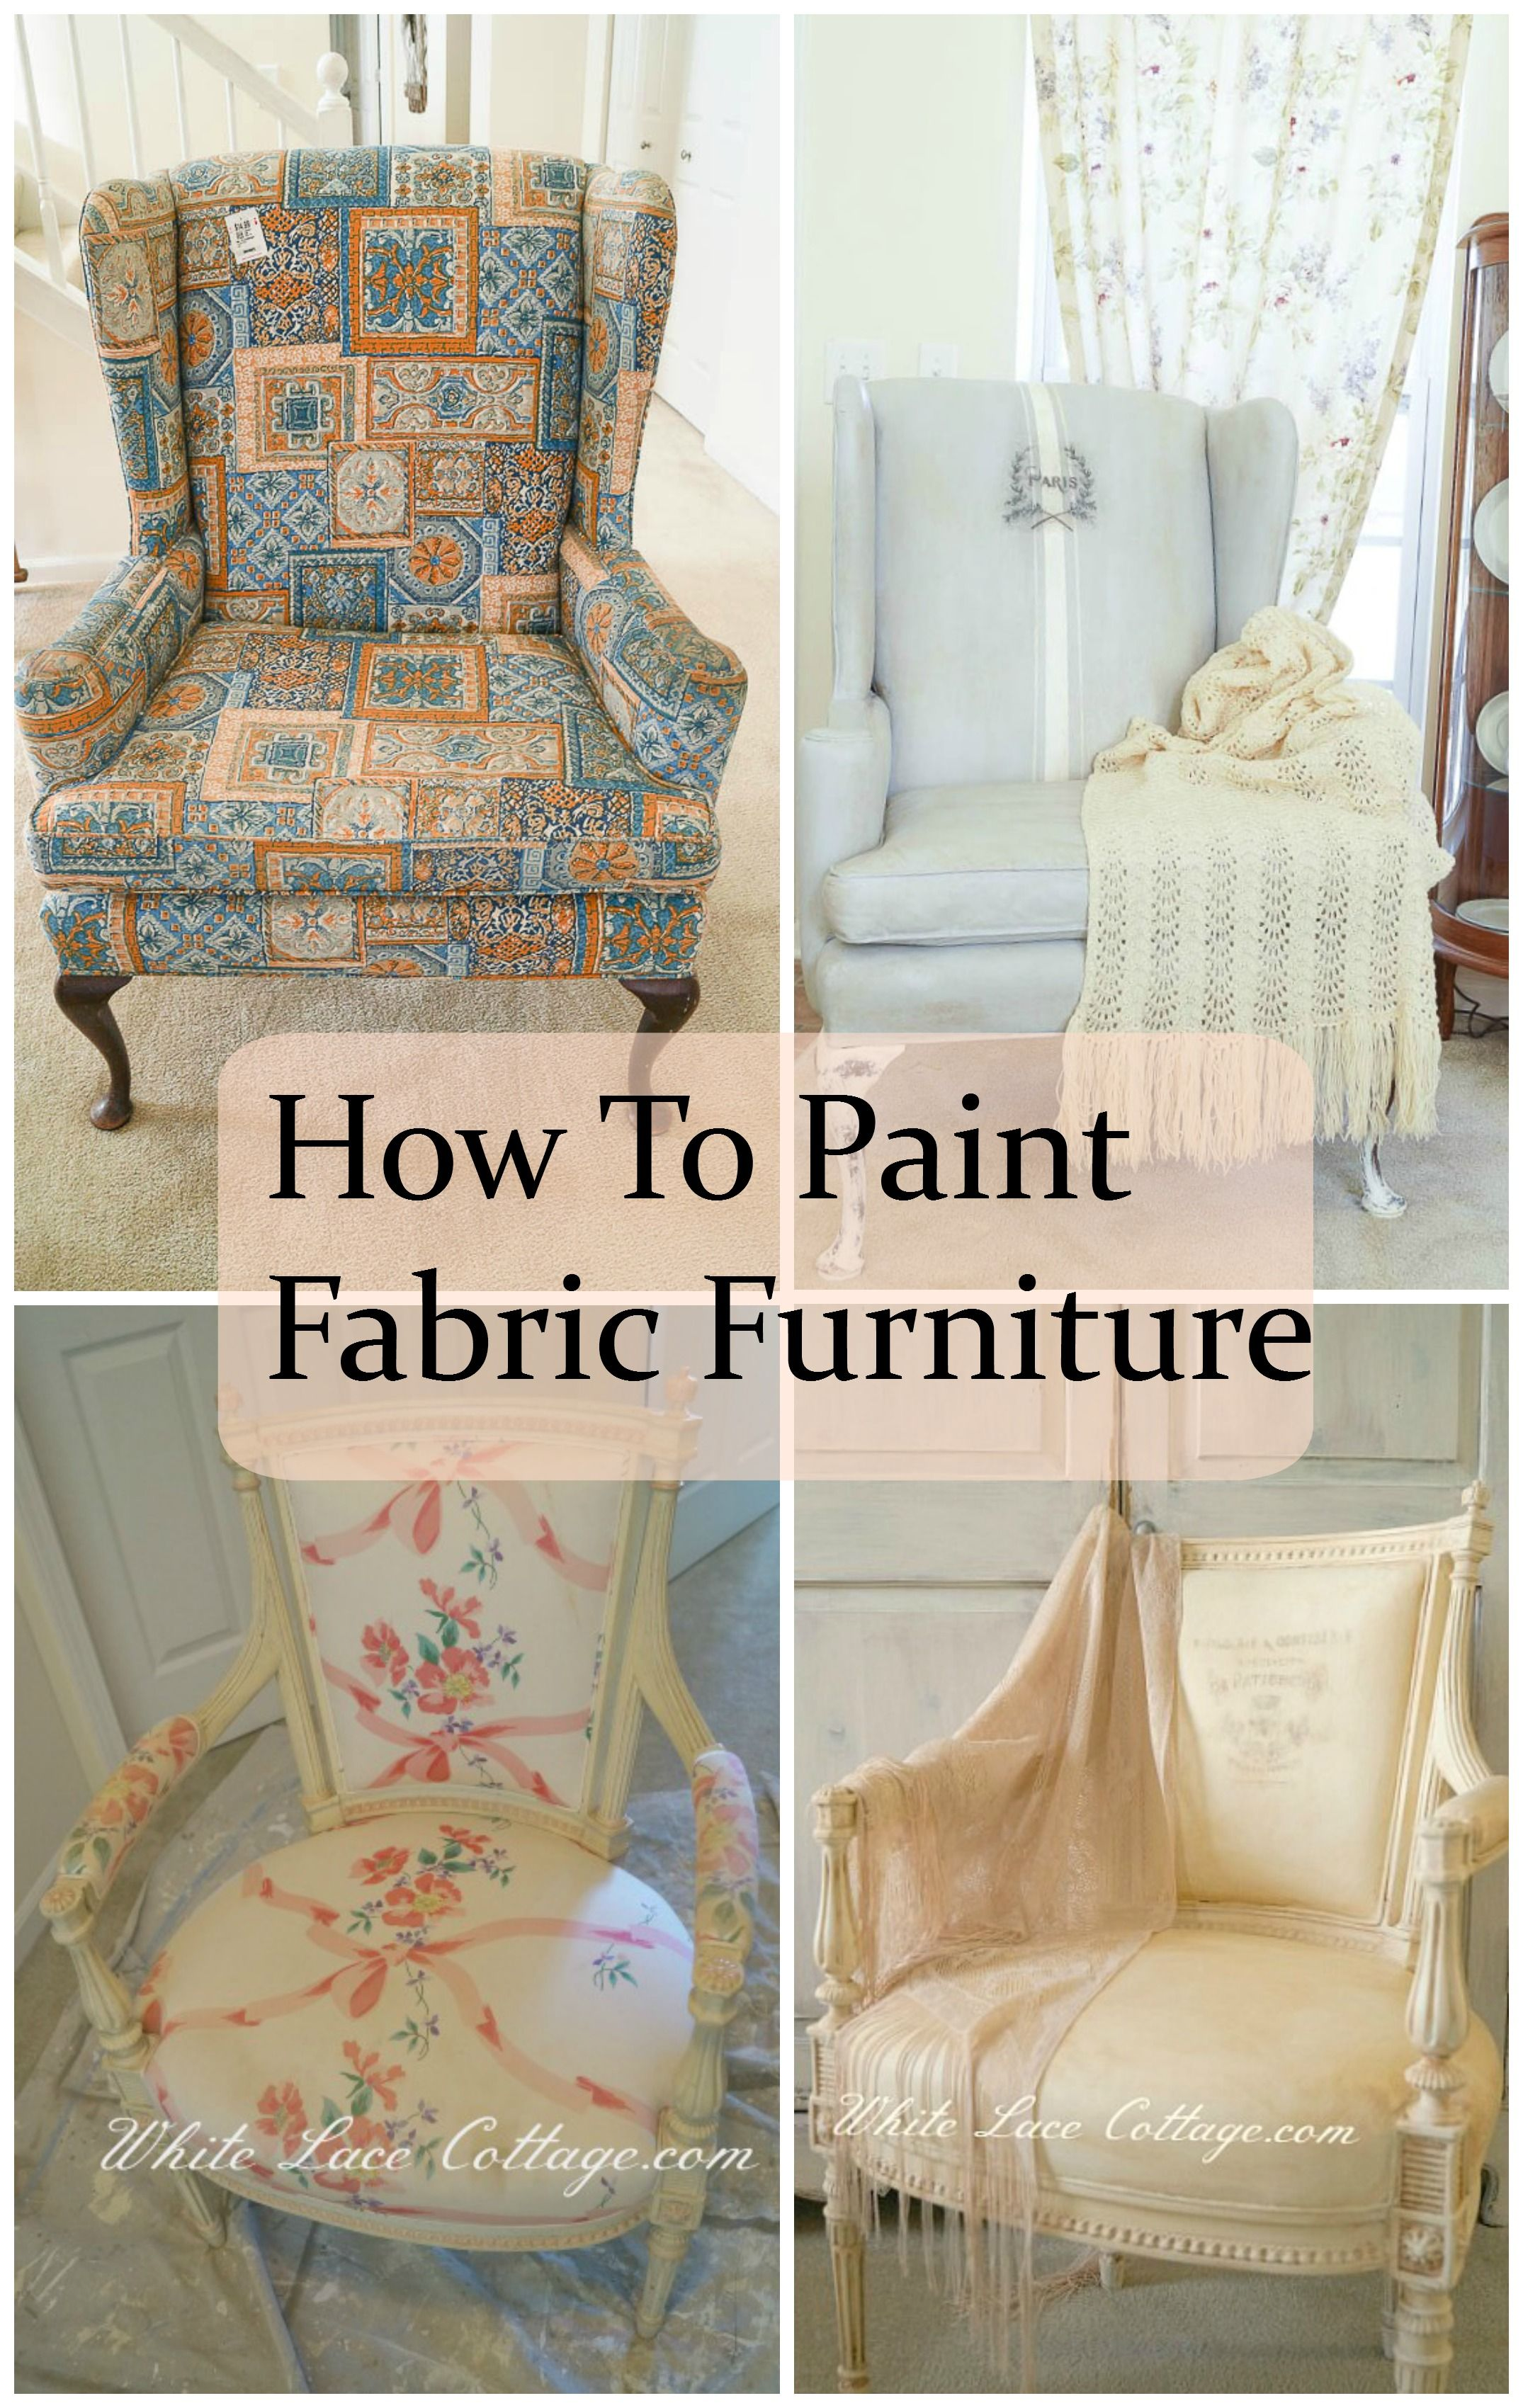 How To Paint Fabric Furniture  White Lace Cottage is part of Painting fabric furniture - I'm always asked how to paint fabric furniture and is it practical  It's not only practical but it's easy and affordable as well